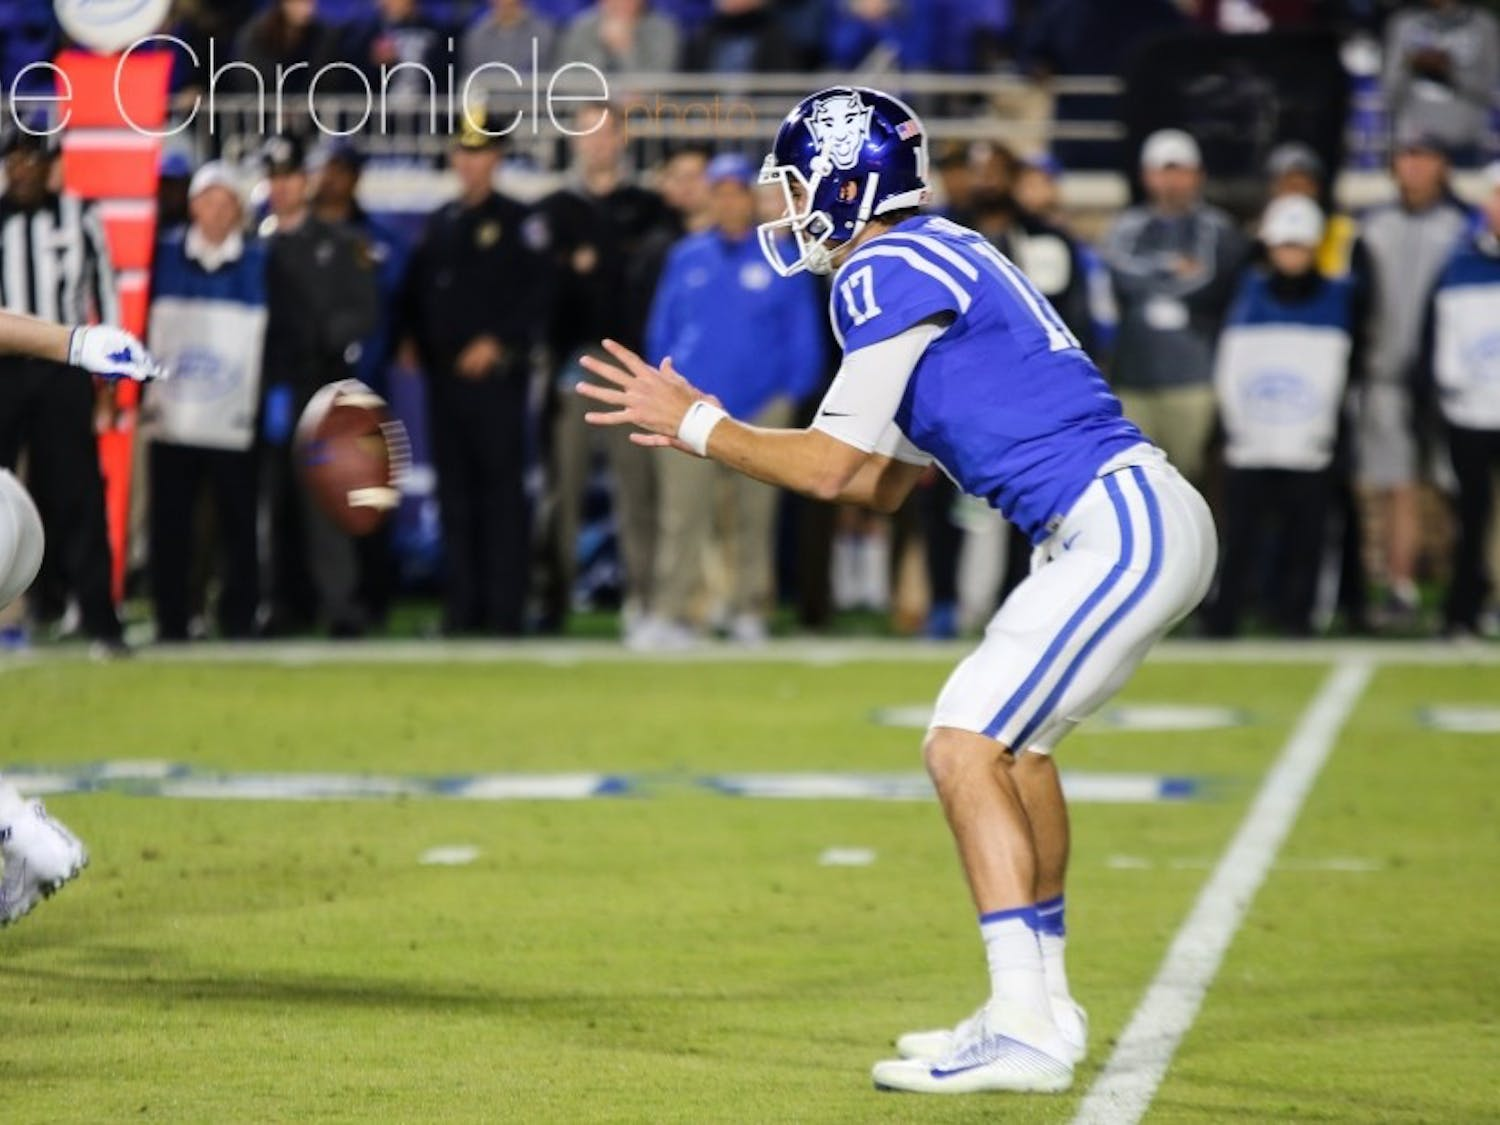 Daniel Jones threw for a touchdown and ran for two more in Duke's 28-27 upset of No. 15 North Carolina.